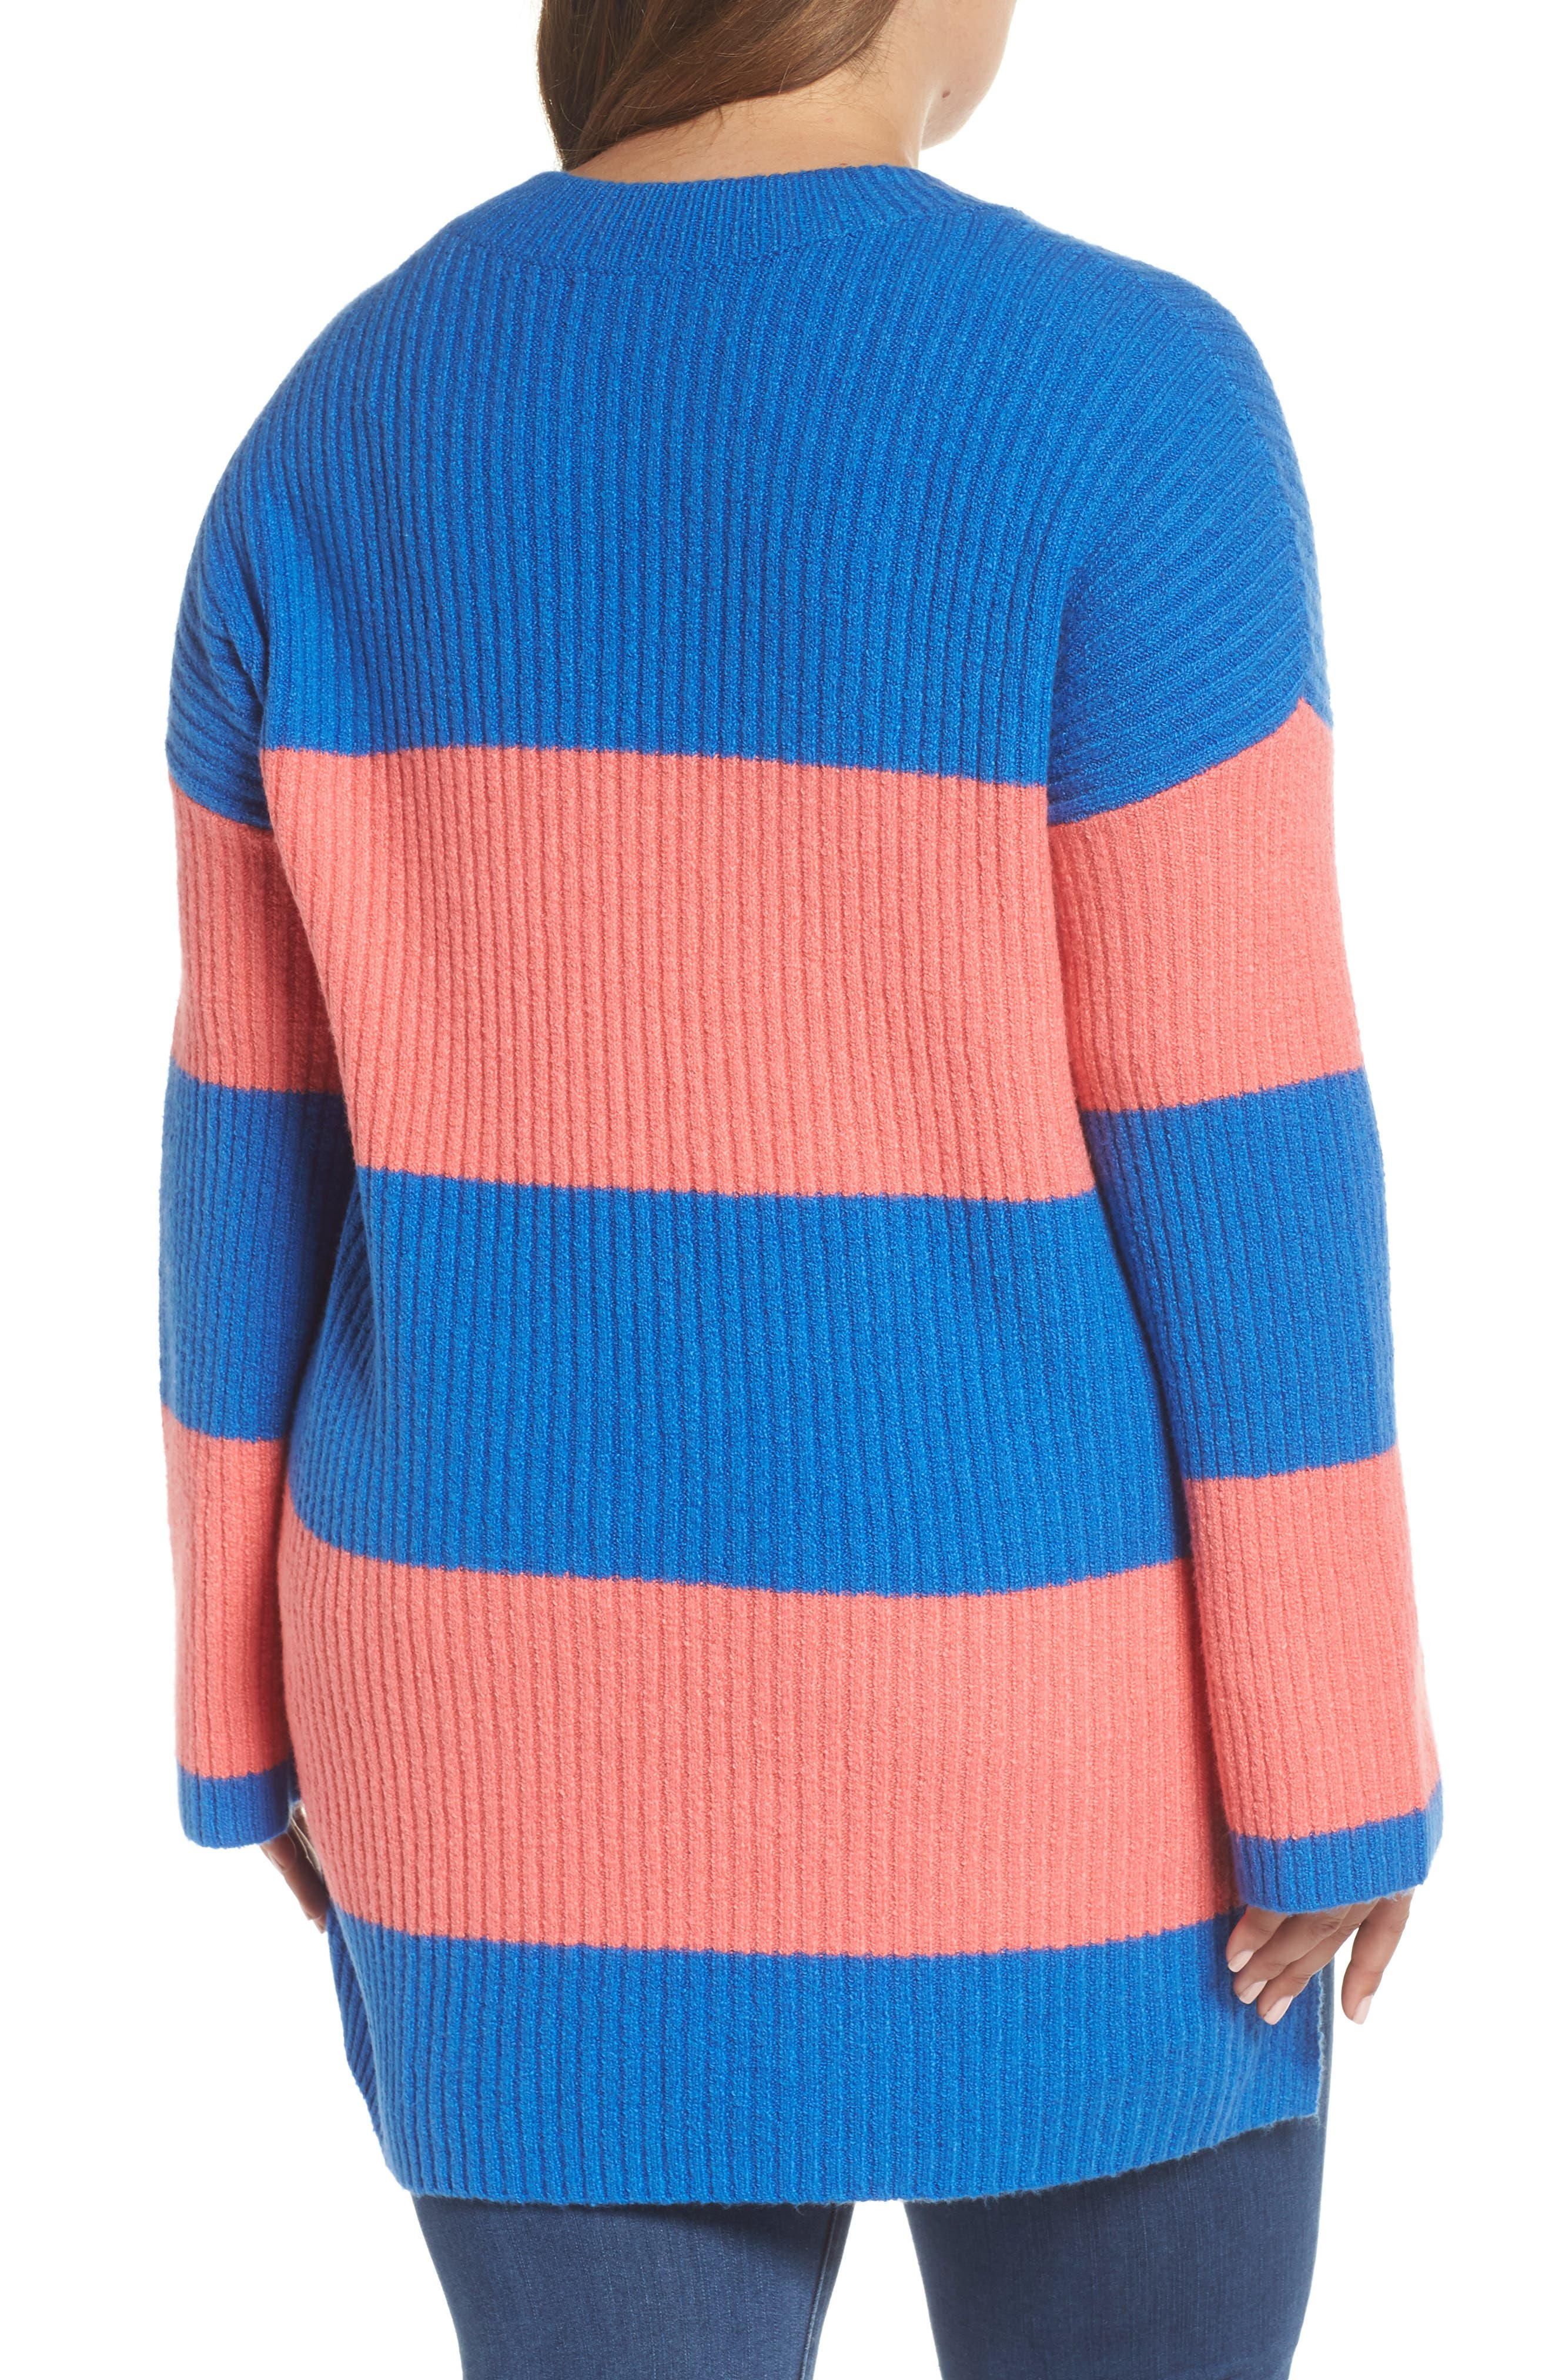 Rugby Stripe Sweater,                             Alternate thumbnail 9, color,                             BLUE BOAT COURTNEY STRIPE